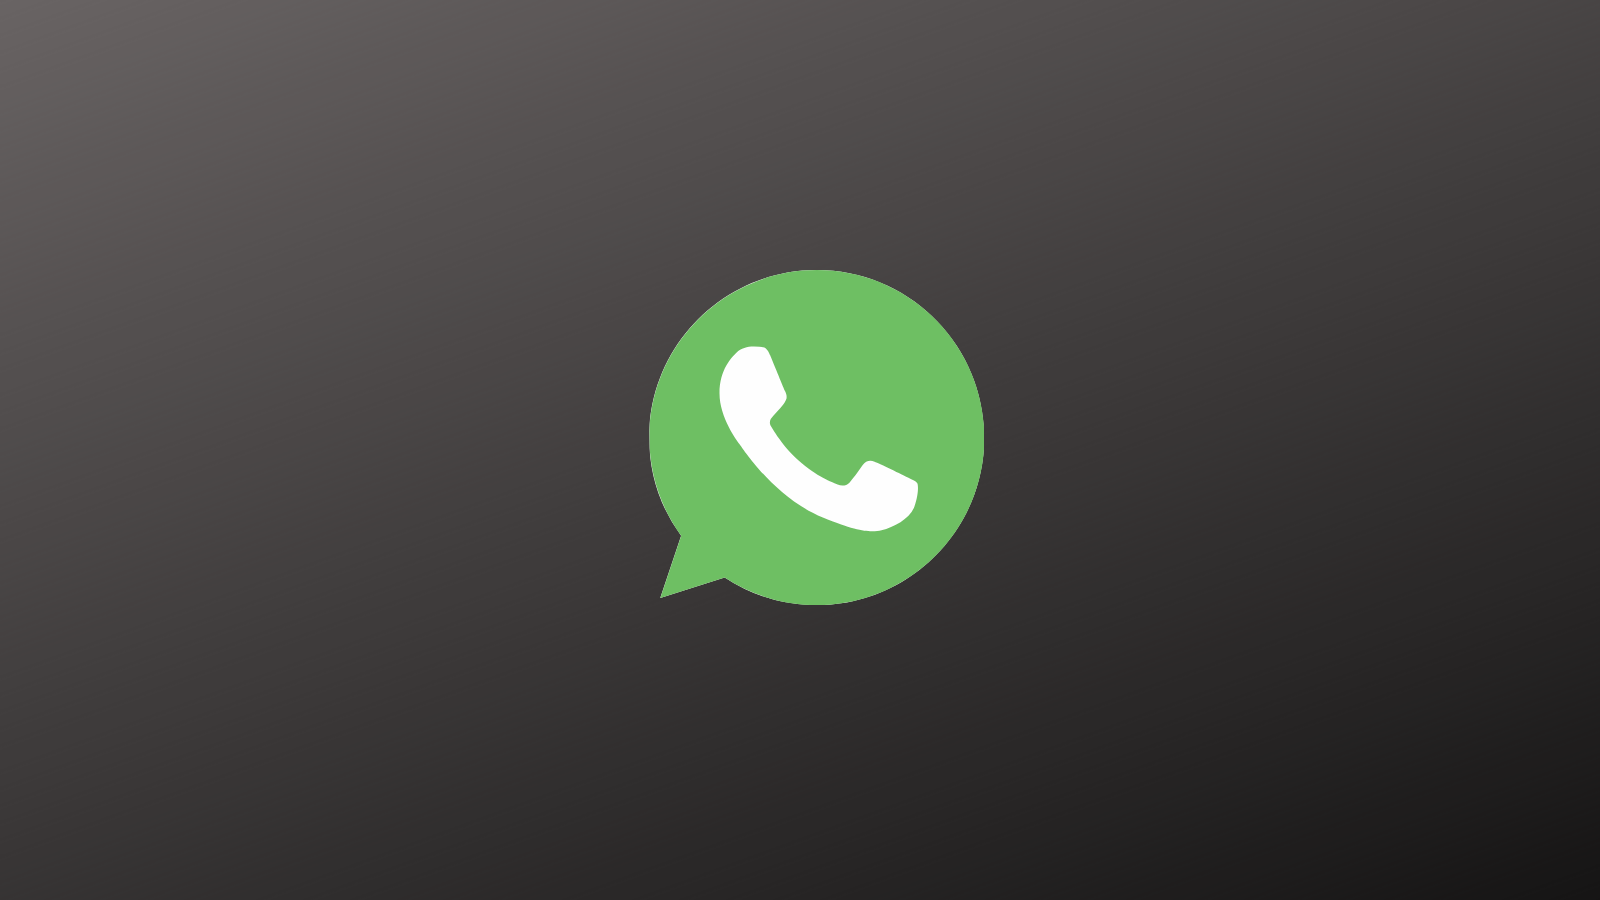 How to Share Location on WhatsApp?